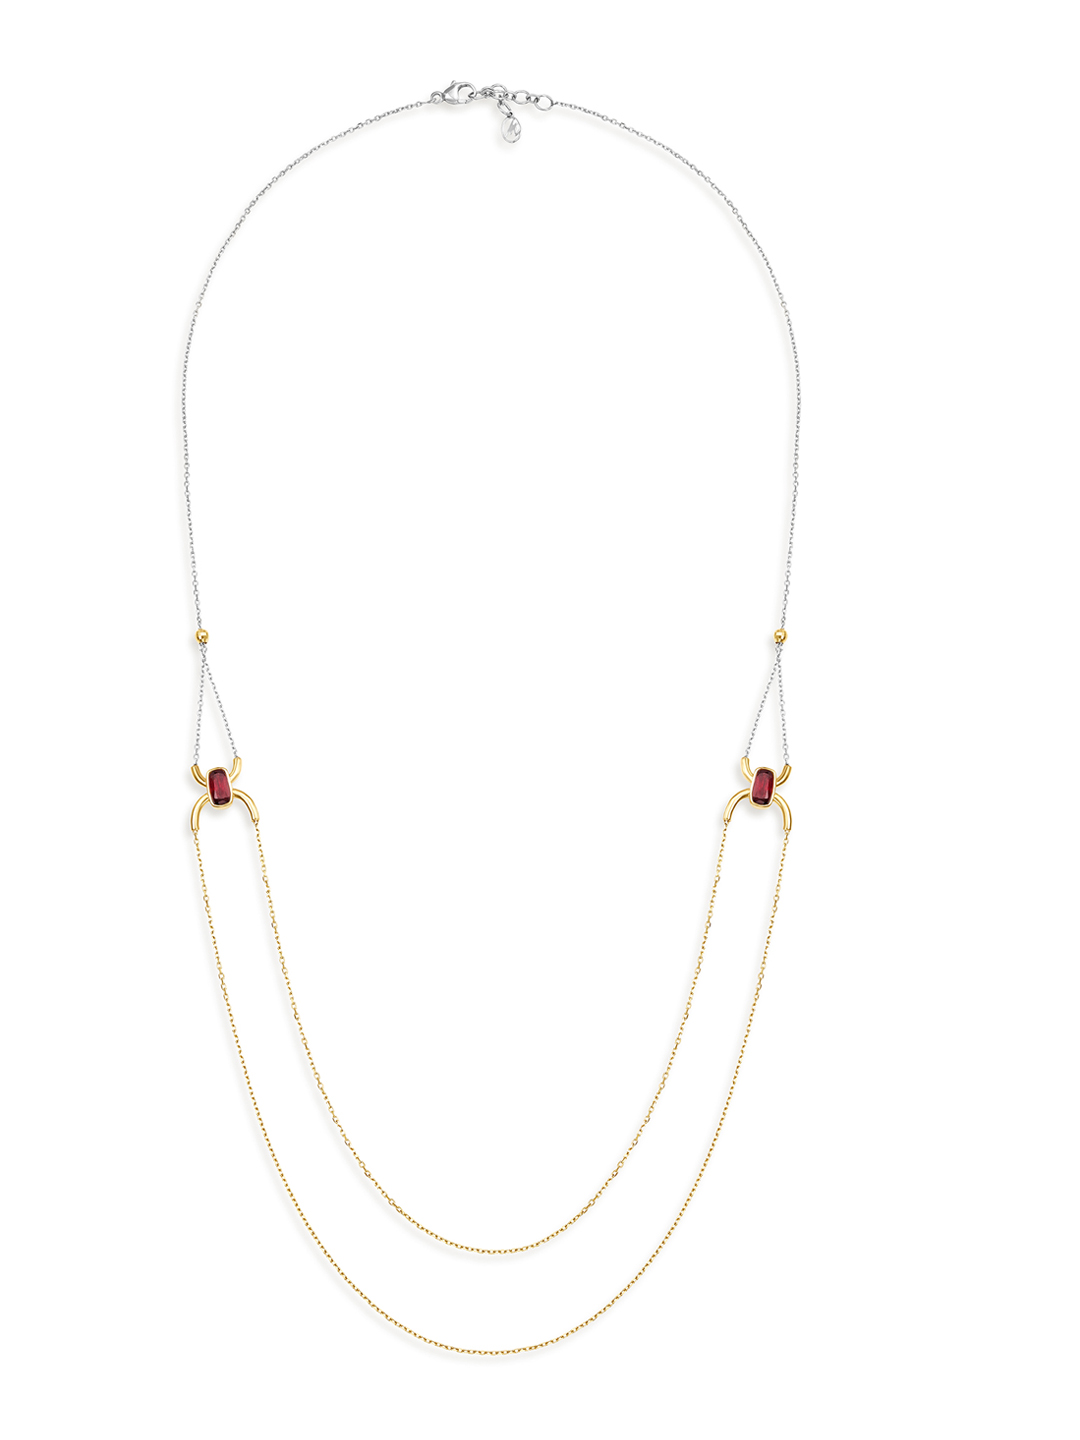 Mia by Tanishq 14KT Yellow Gold Necklace with Pink Garnets Price in India